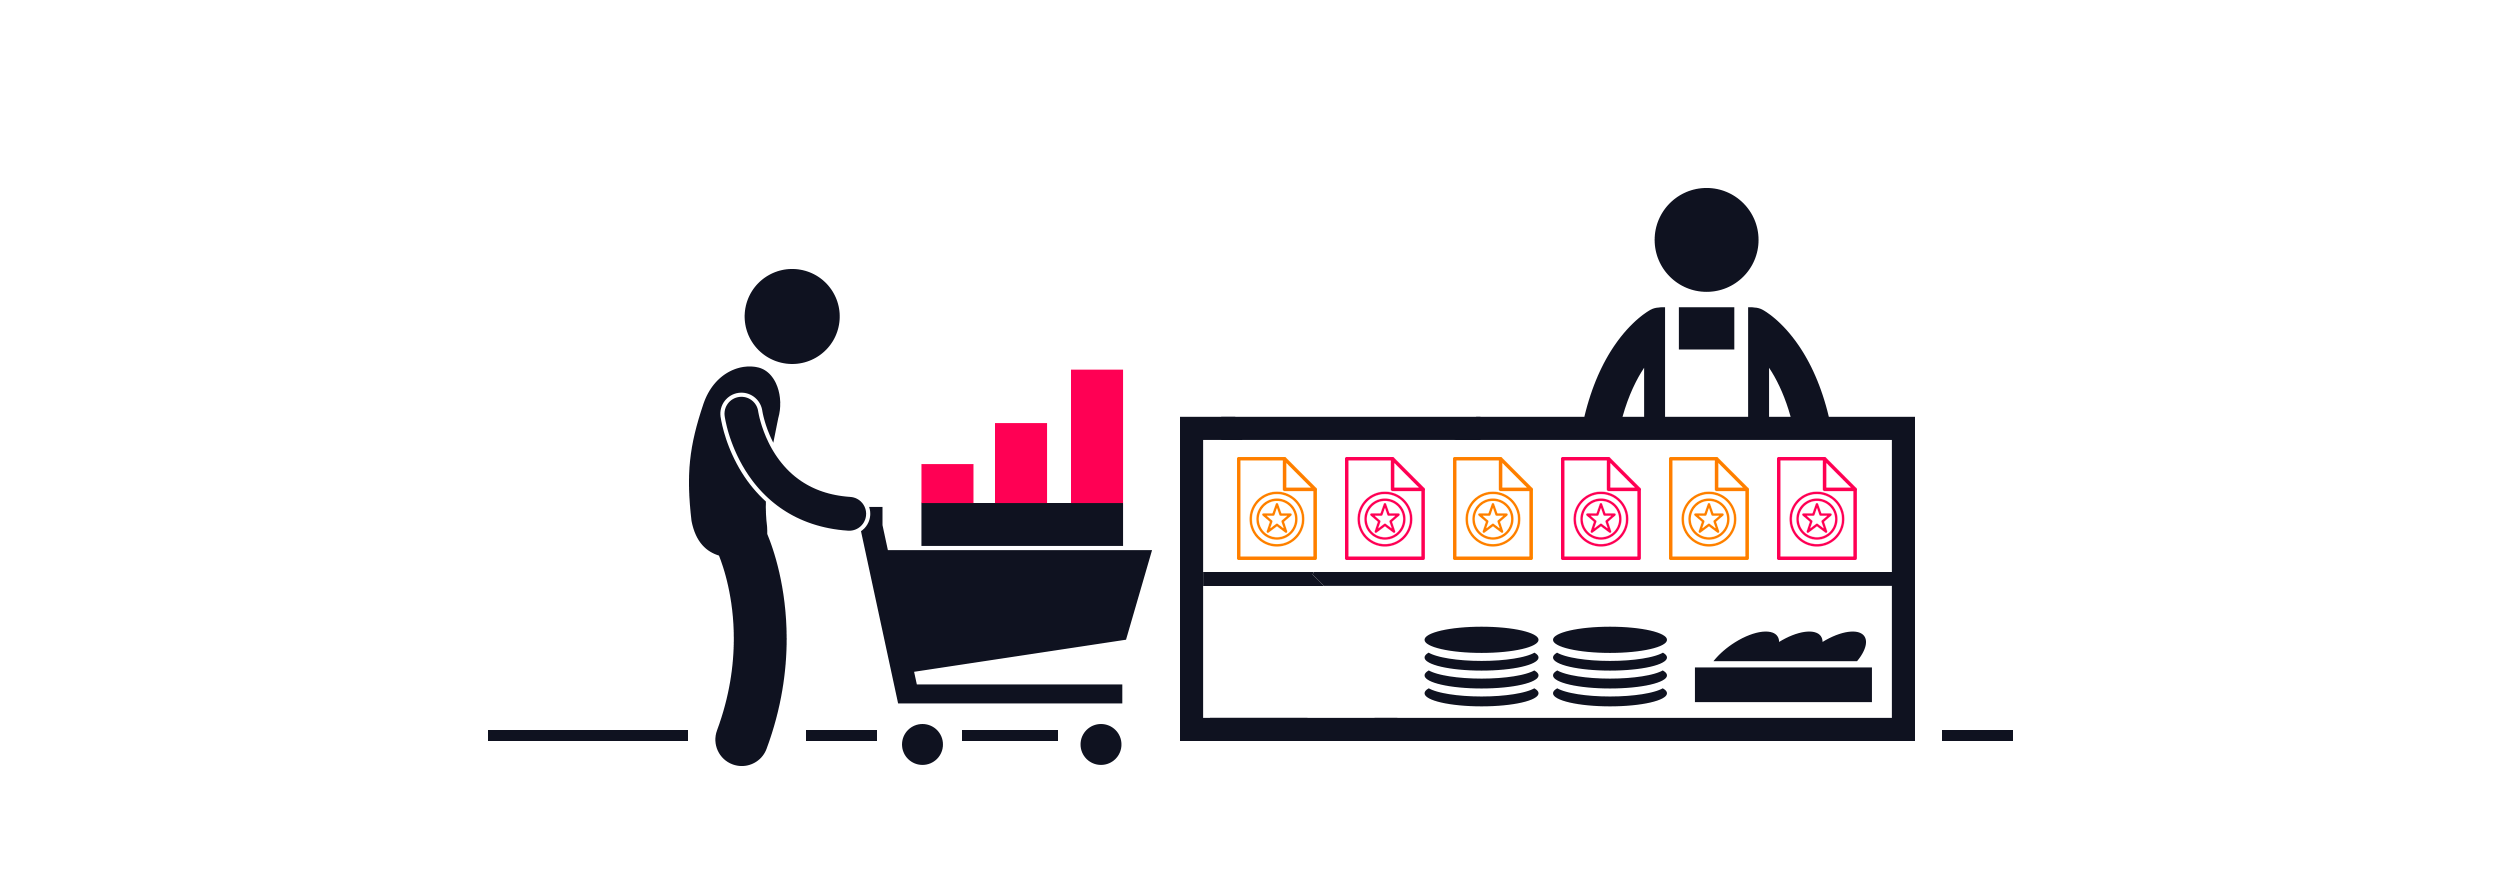 6 Essential Marketing Tactics to Grow Your eCommerce Store